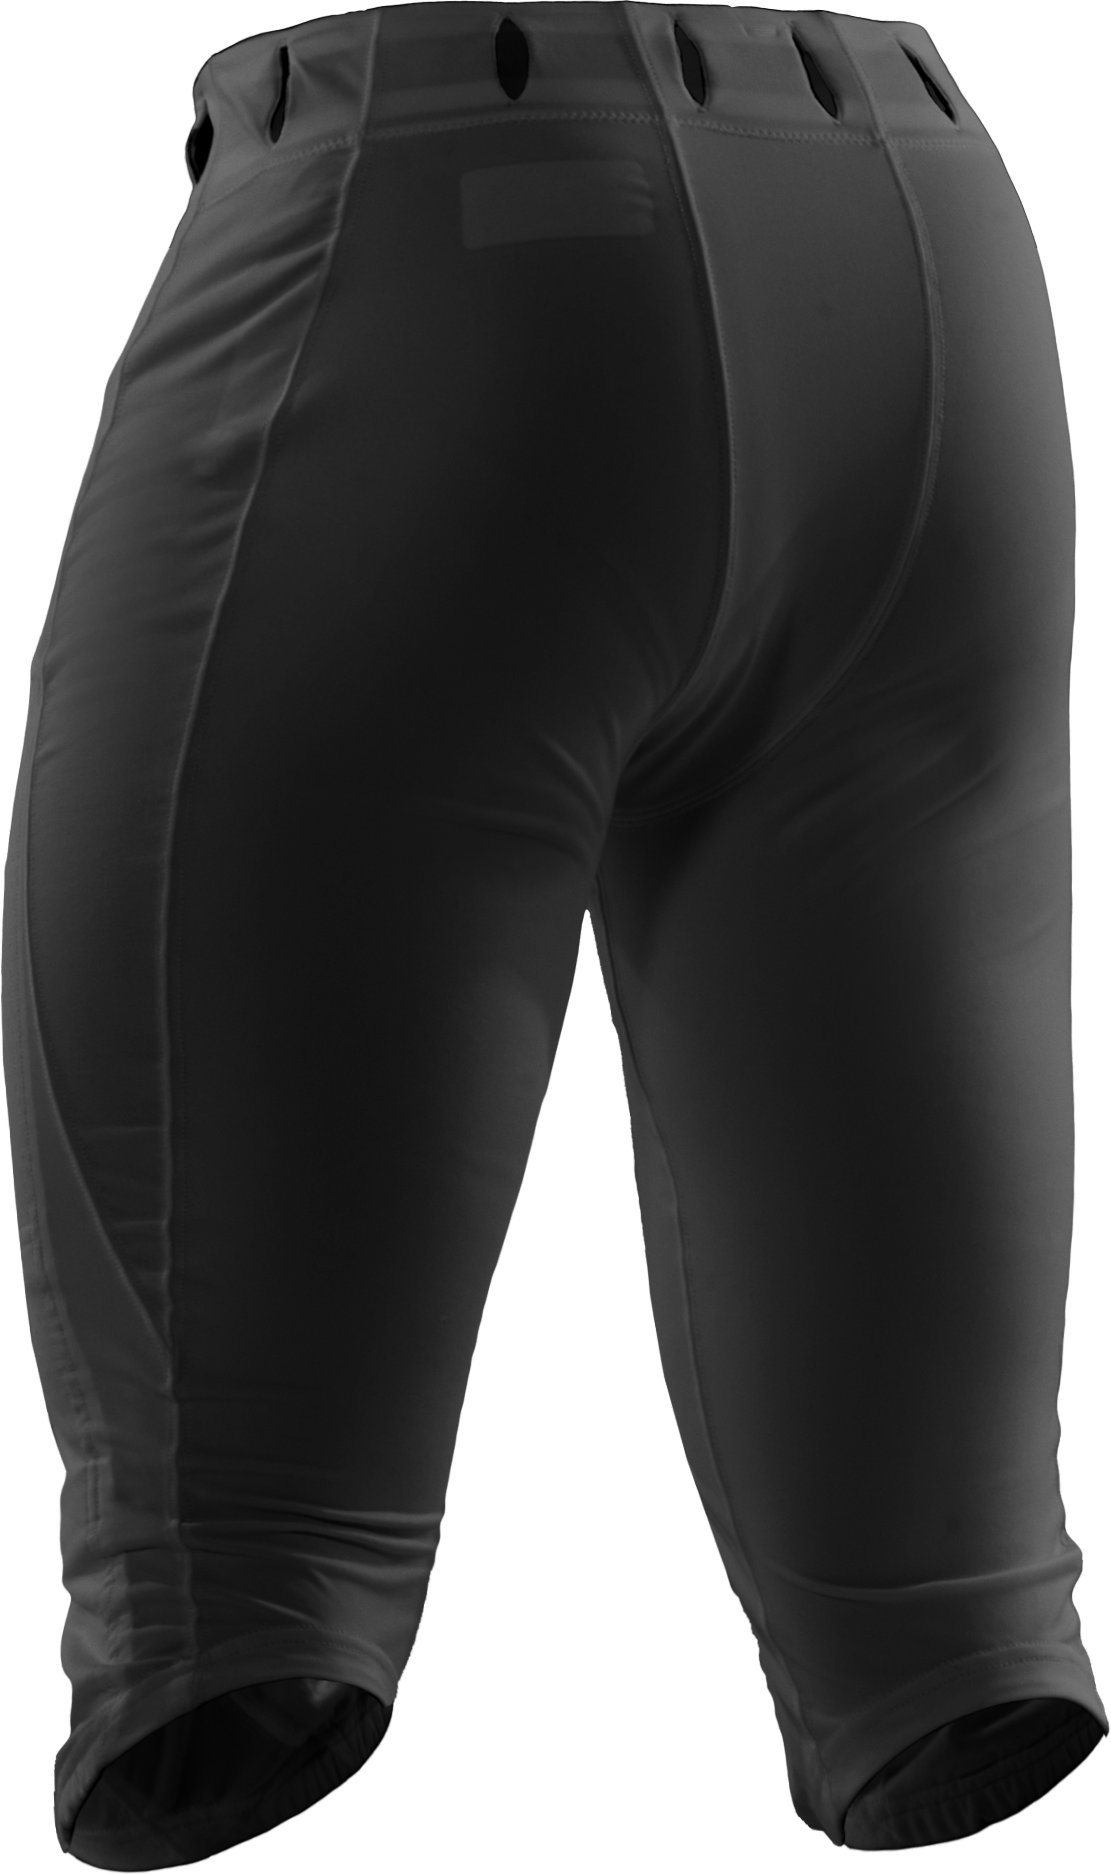 Men's Signature Football Pants, Black